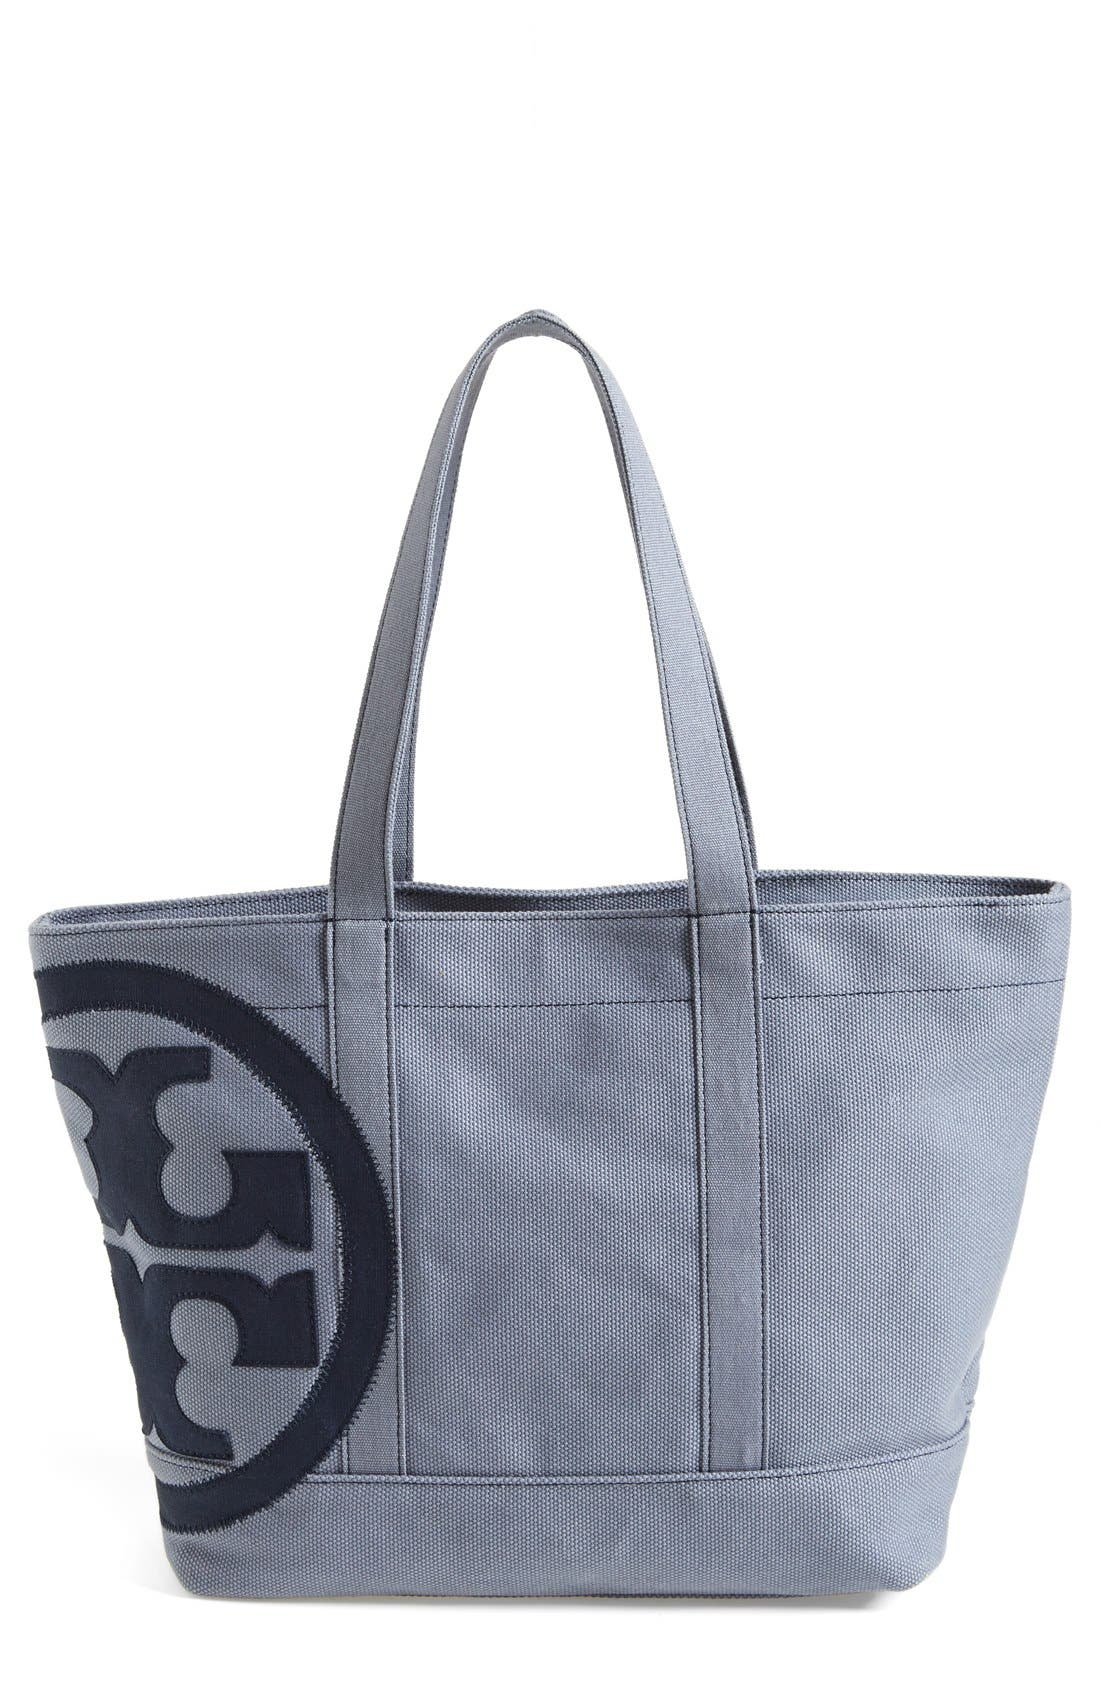 Alternate Image 1 Selected - Tory Burch 'Small' Canvas Zip Tote